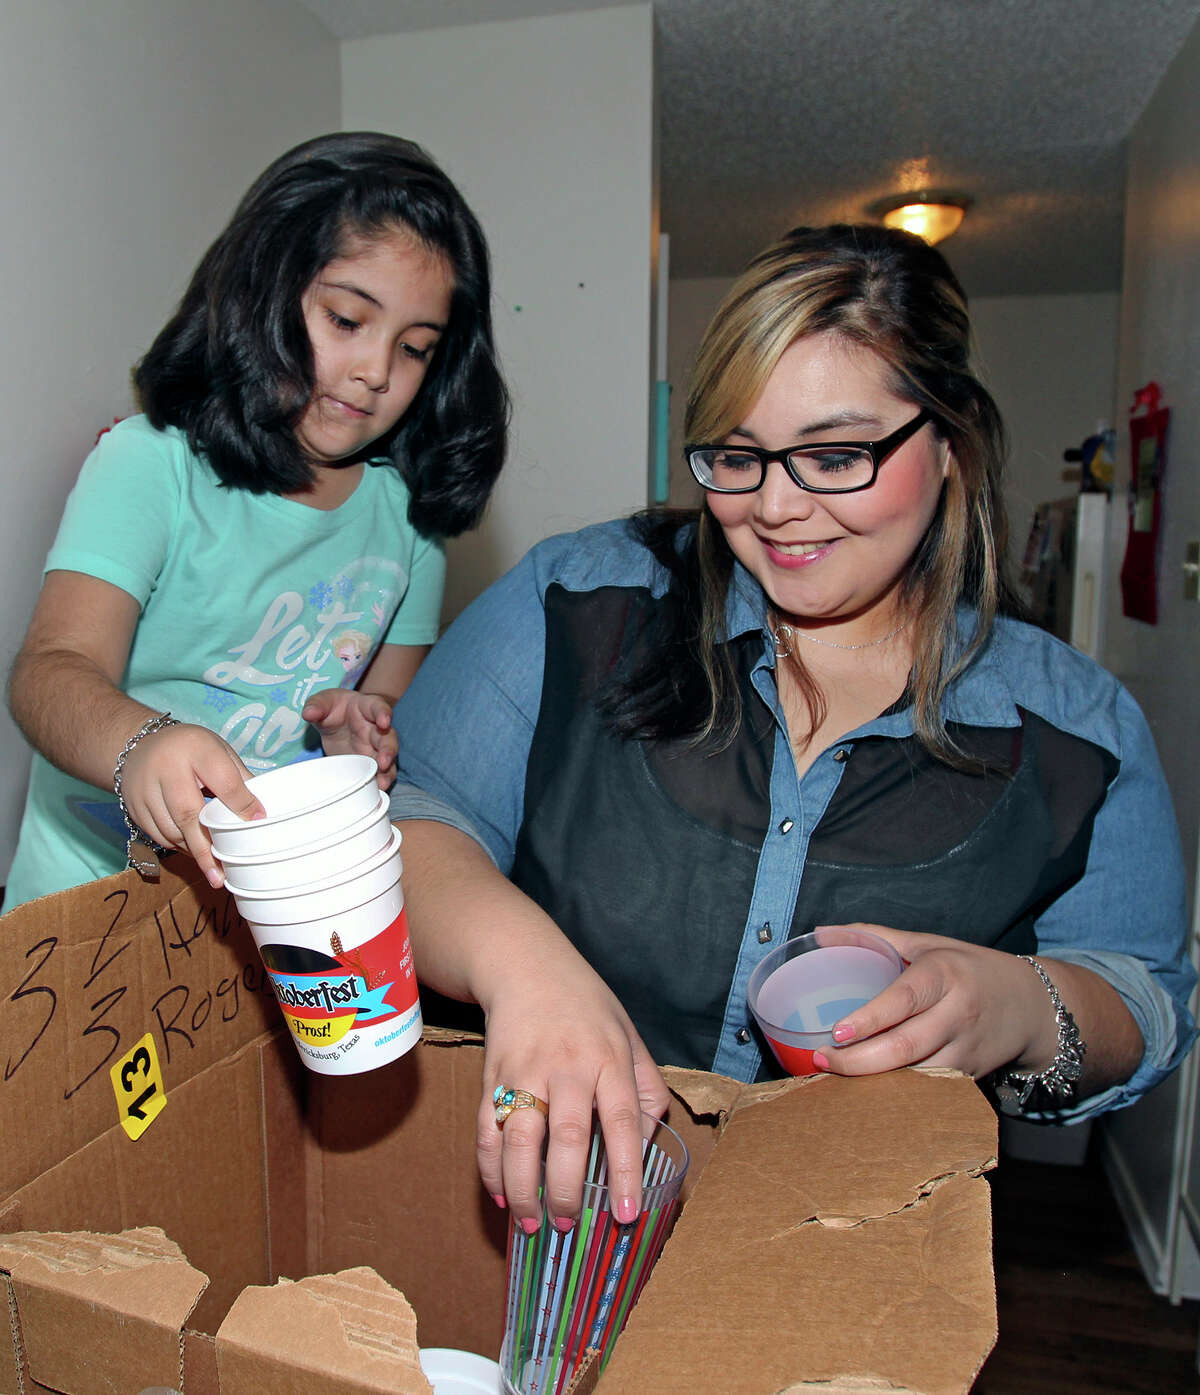 Elizabeth Rodriguez and her daughter, 8-year-old Jaydlyn Garza, pack kitchen items as they she prepare to move out of their apartment and into a home they are buying later this month.